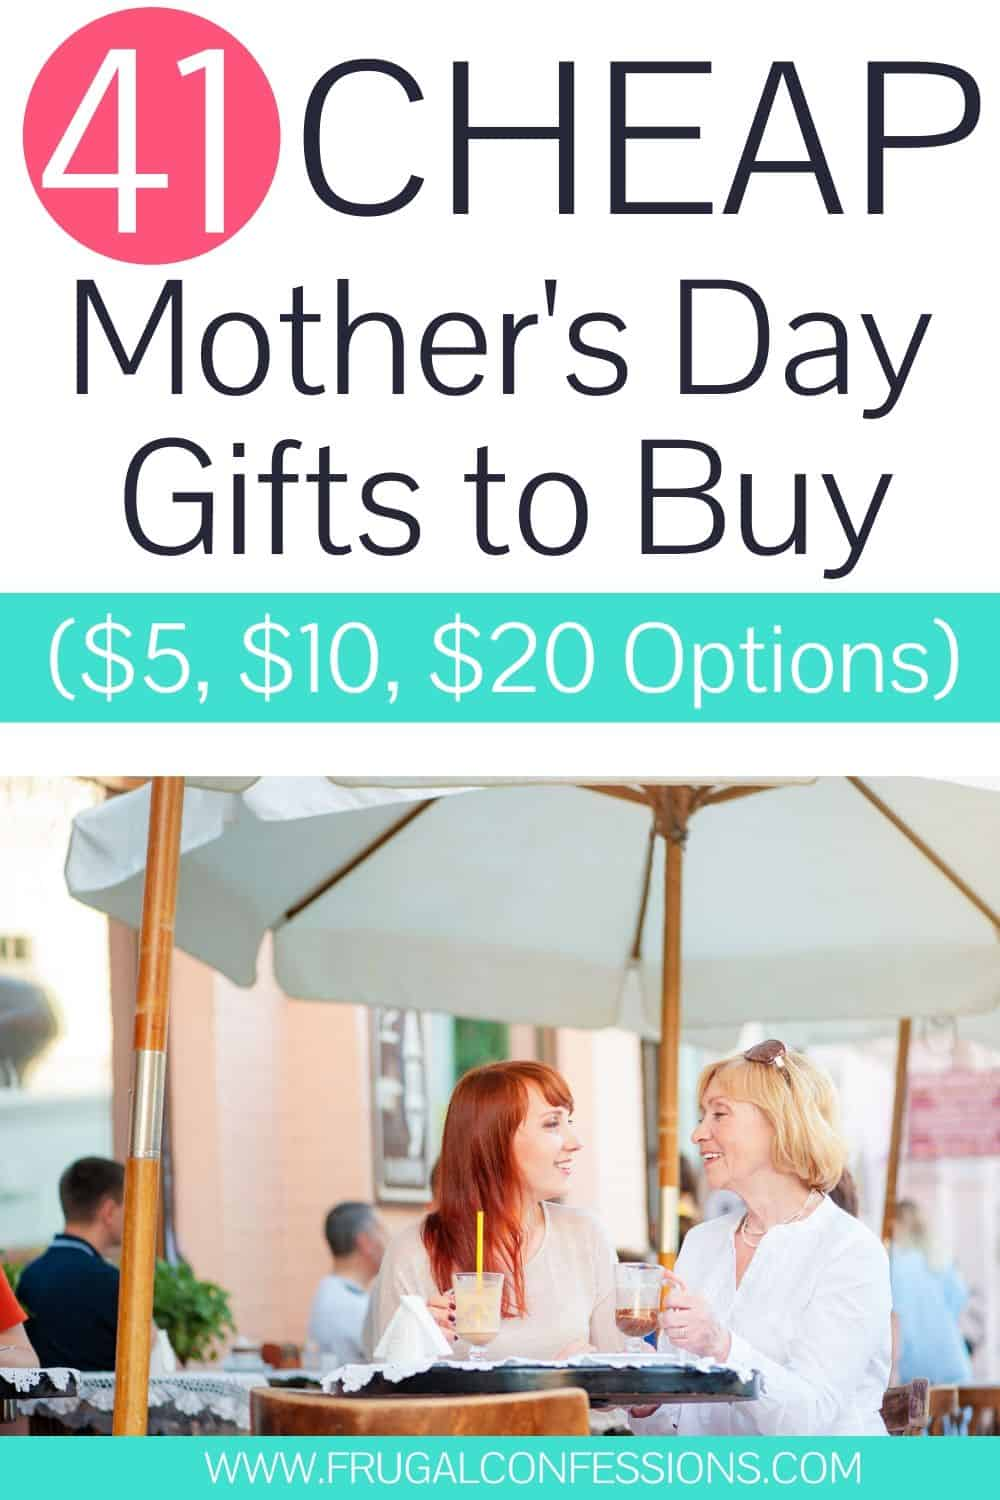 """adult daughter with mother on Mother's day, text overlay """"41 cheap Mother's day gifts to buy $5, $10, and $20"""""""